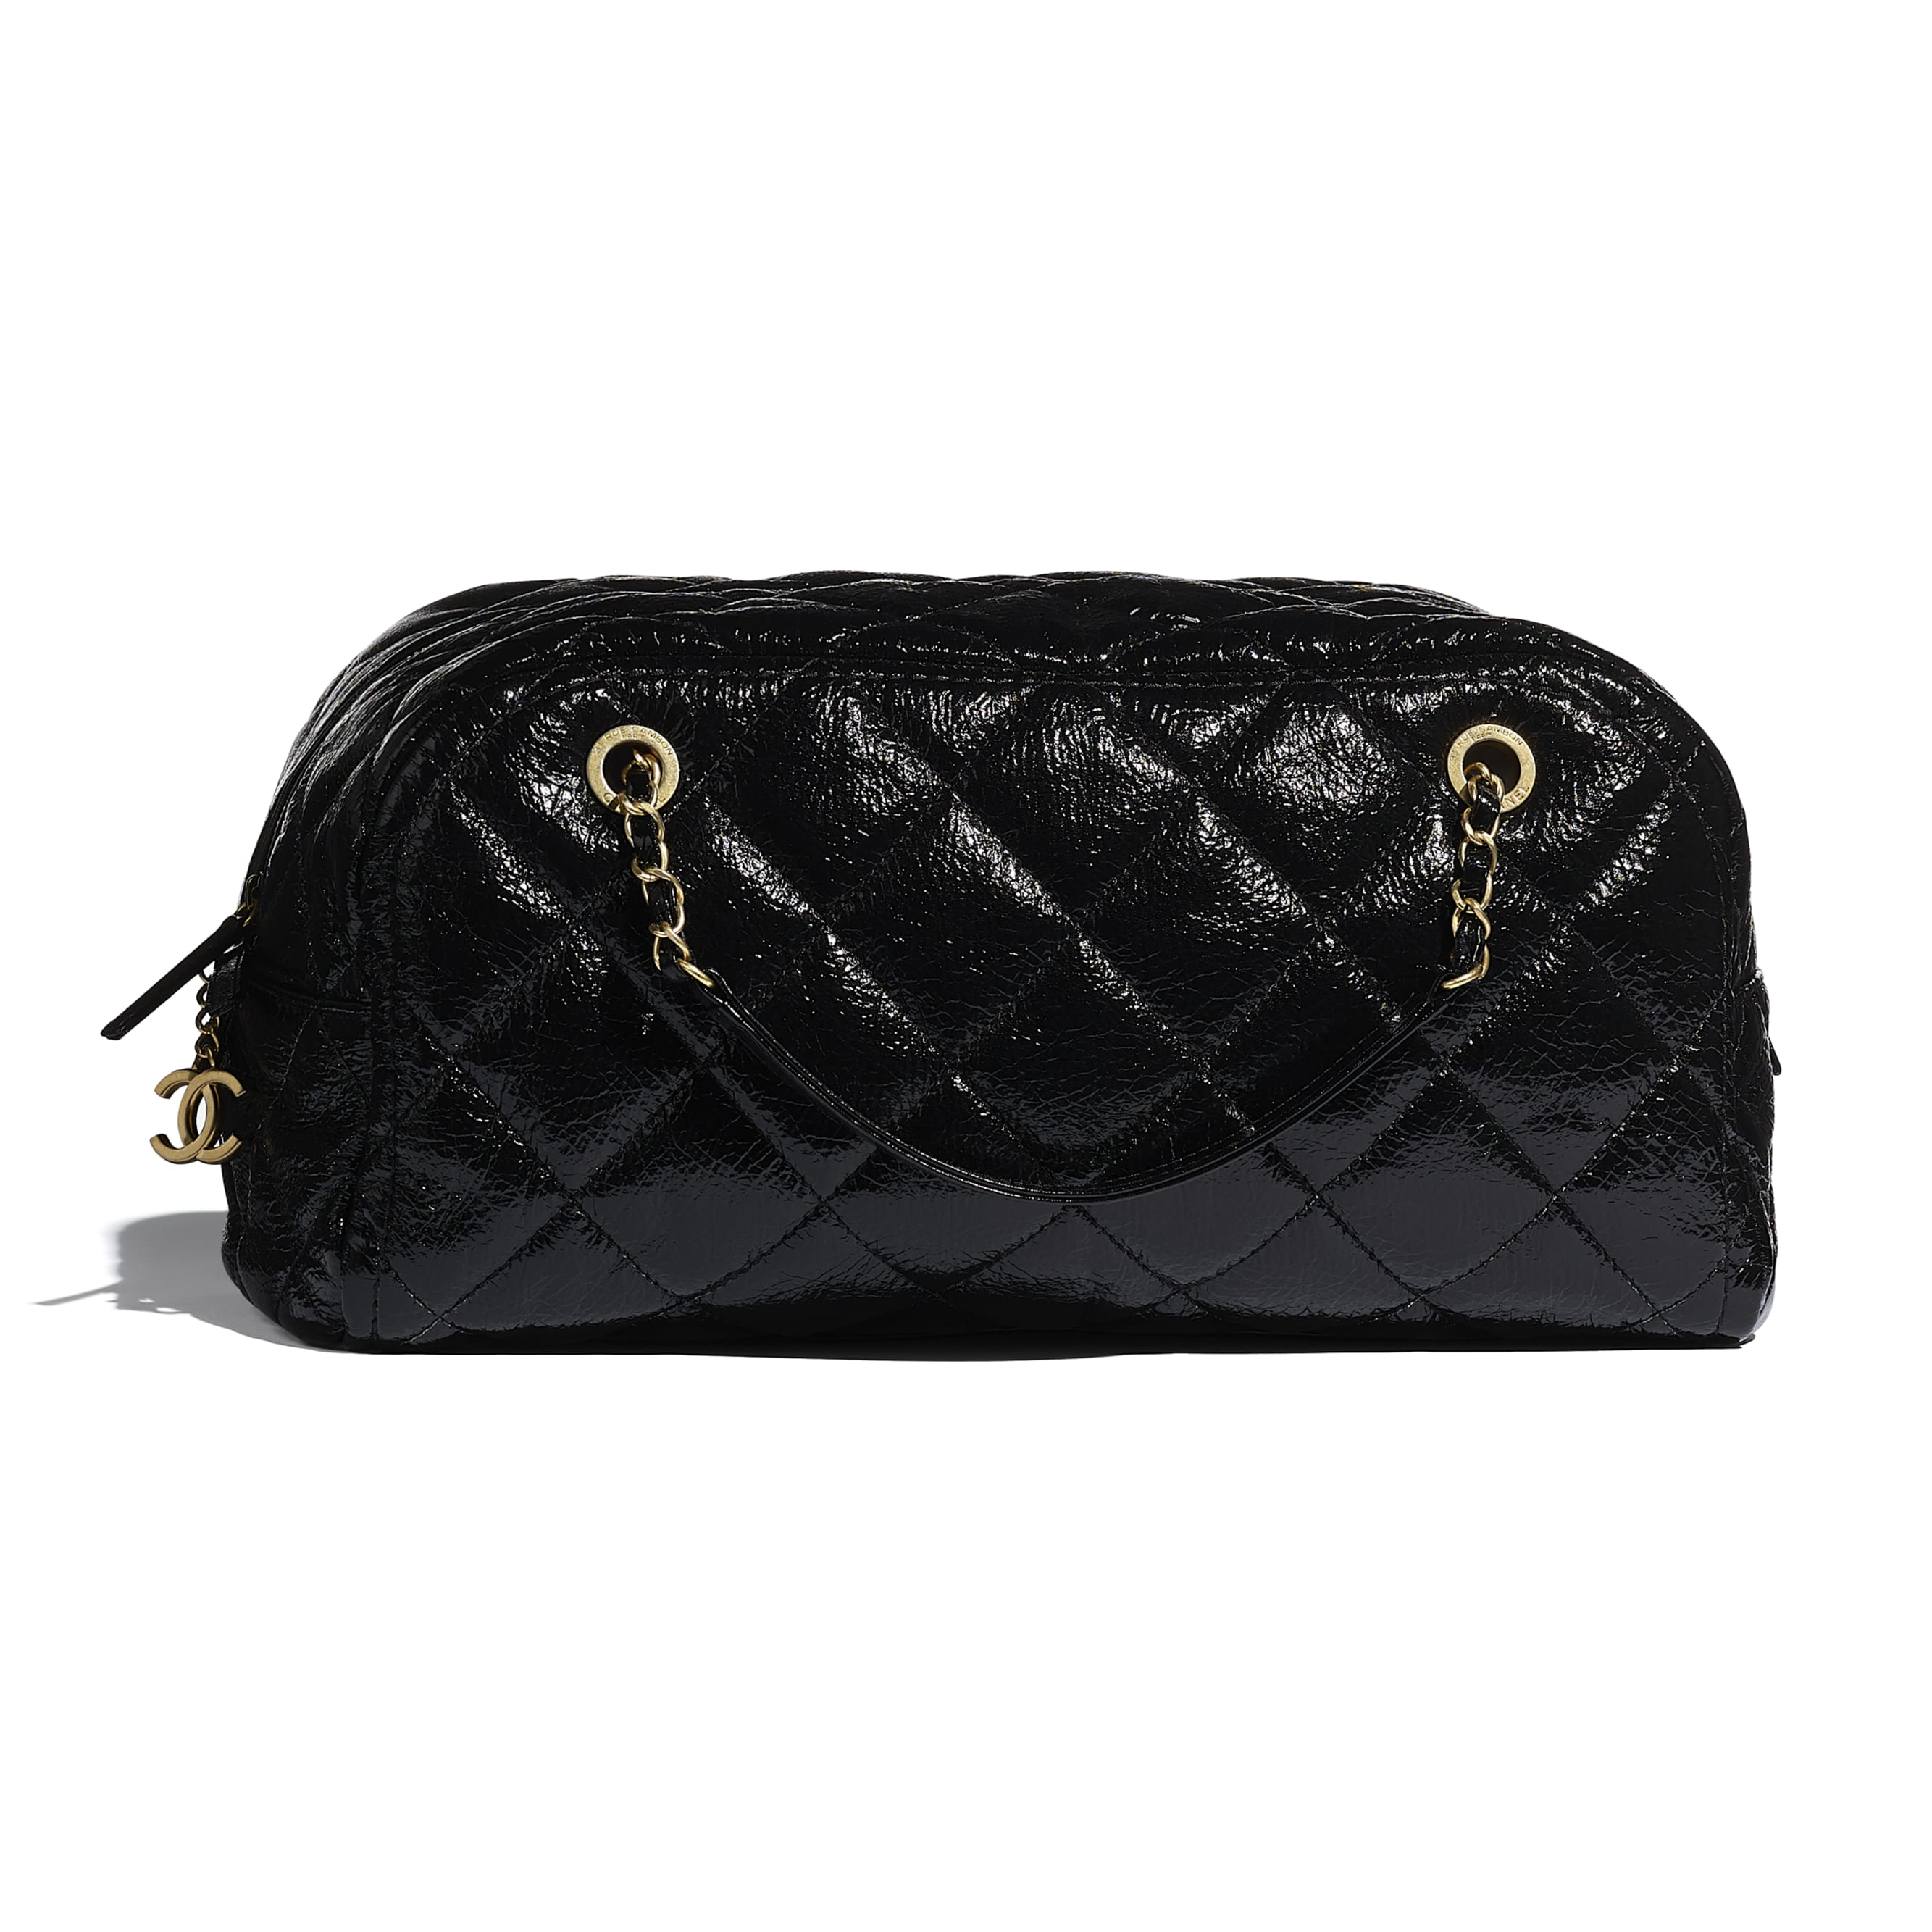 Large Bowling Bag - Black - Shiny Crumpled Calfskin & Gold-Tone Metal - CHANEL - Alternative view - see standard sized version